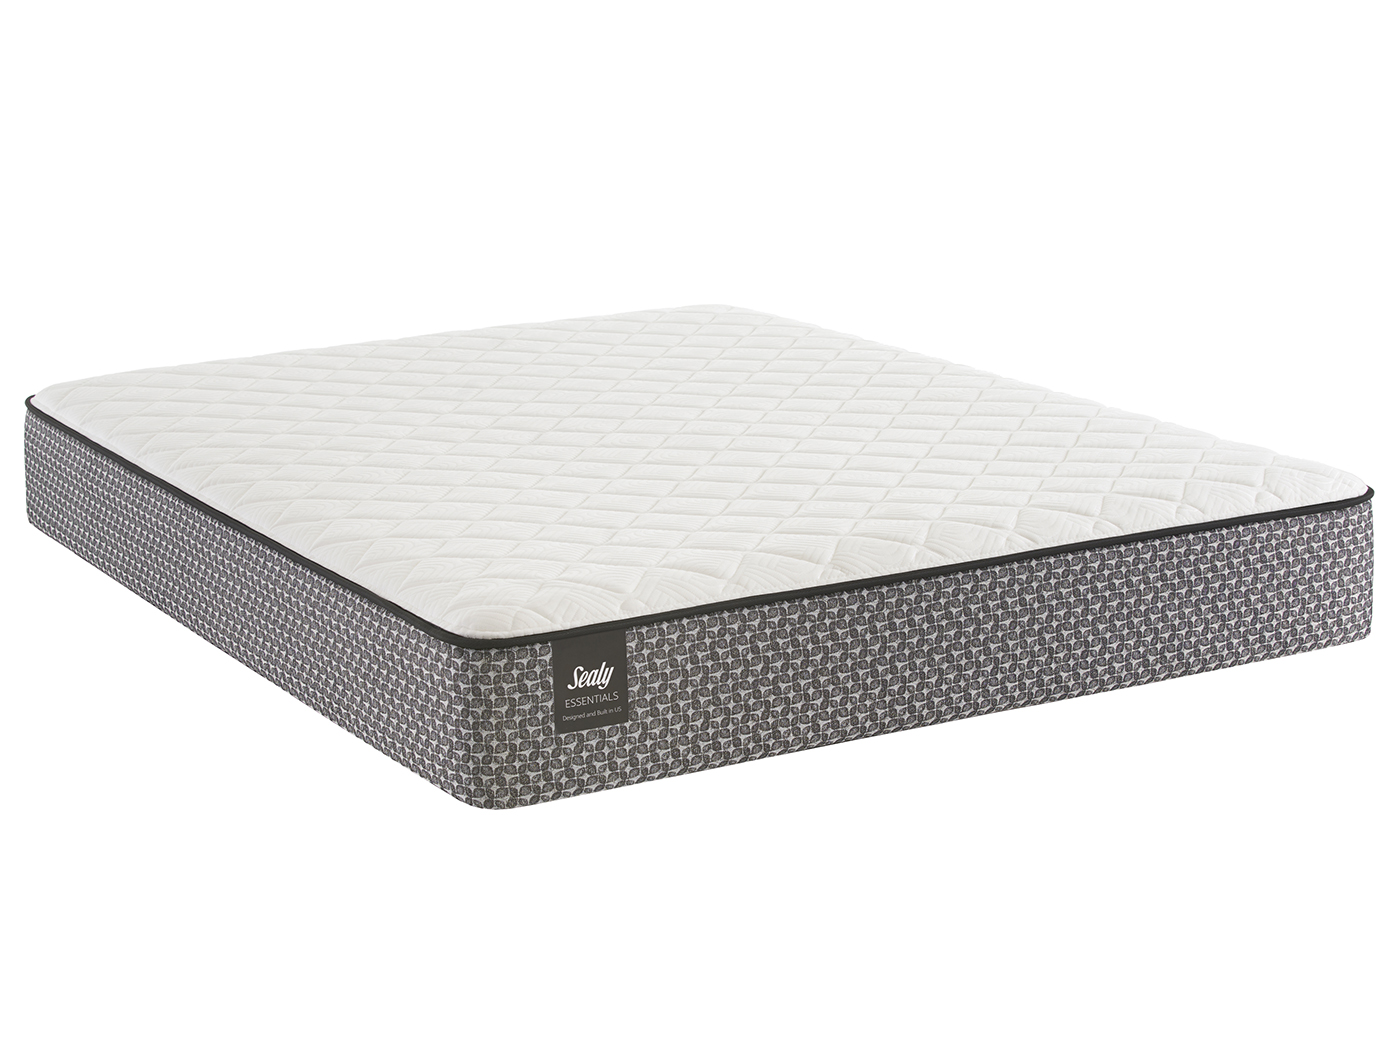 Sealy Supportive Firm Full Mattress